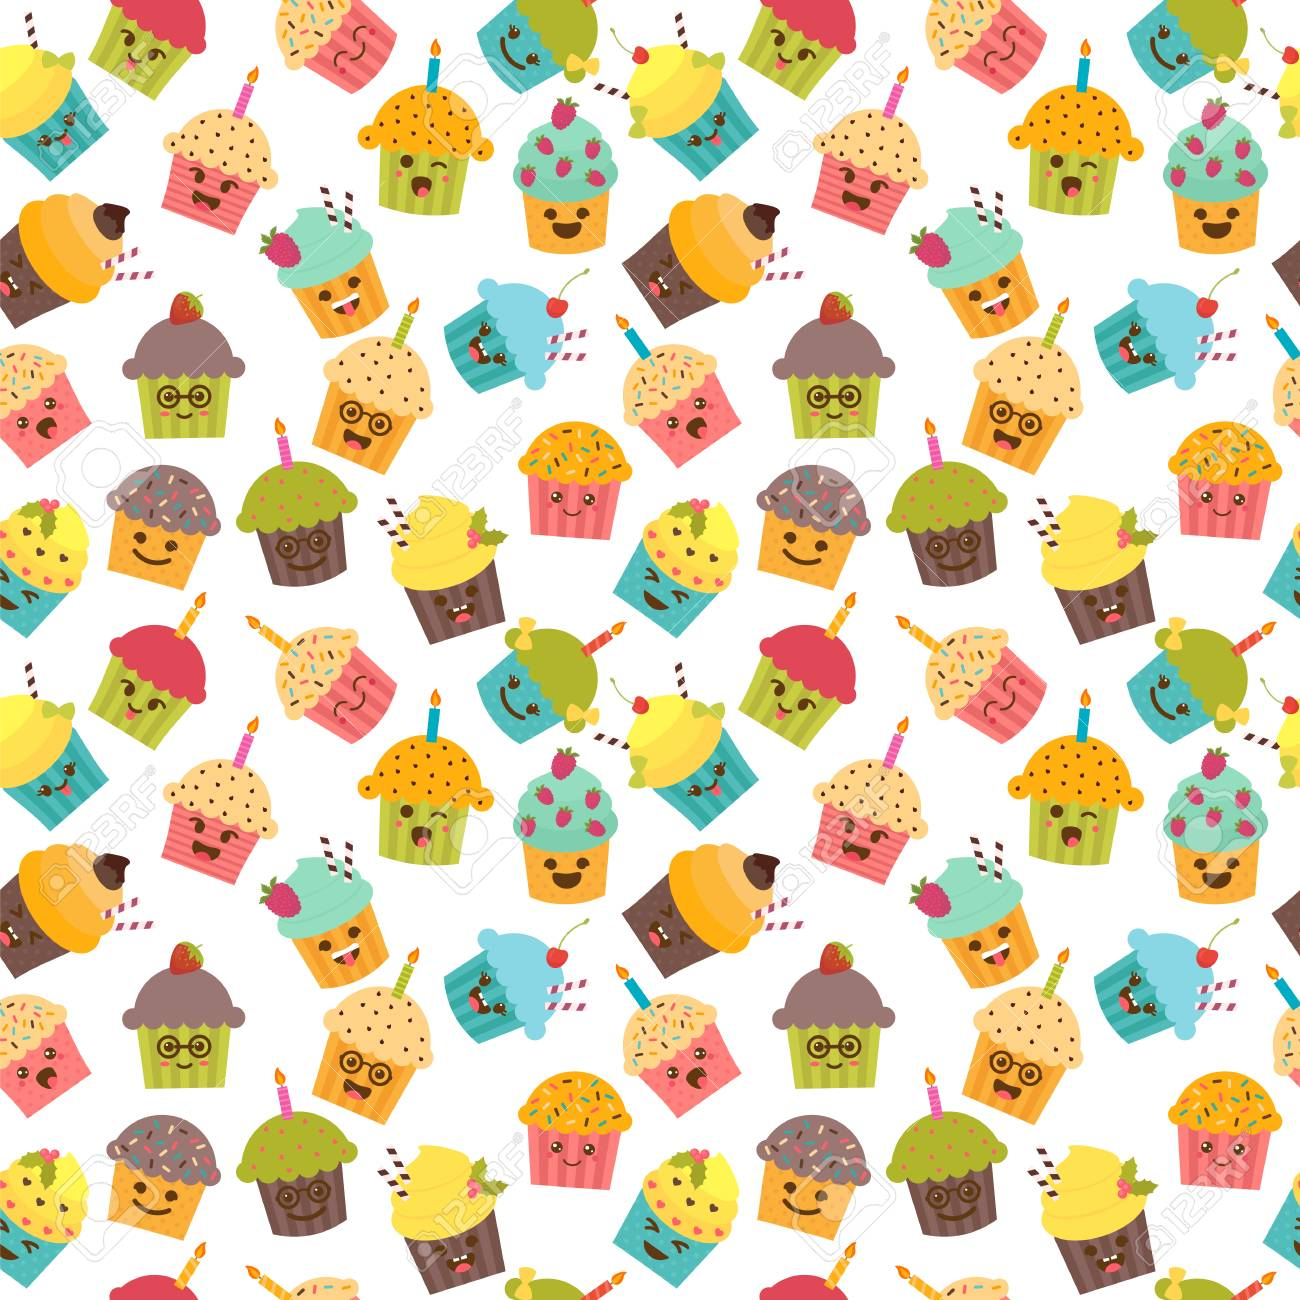 Birthday Background Seamless Pattern With Cupcakes And Muffins Kawaii Cute Cartoon Characters